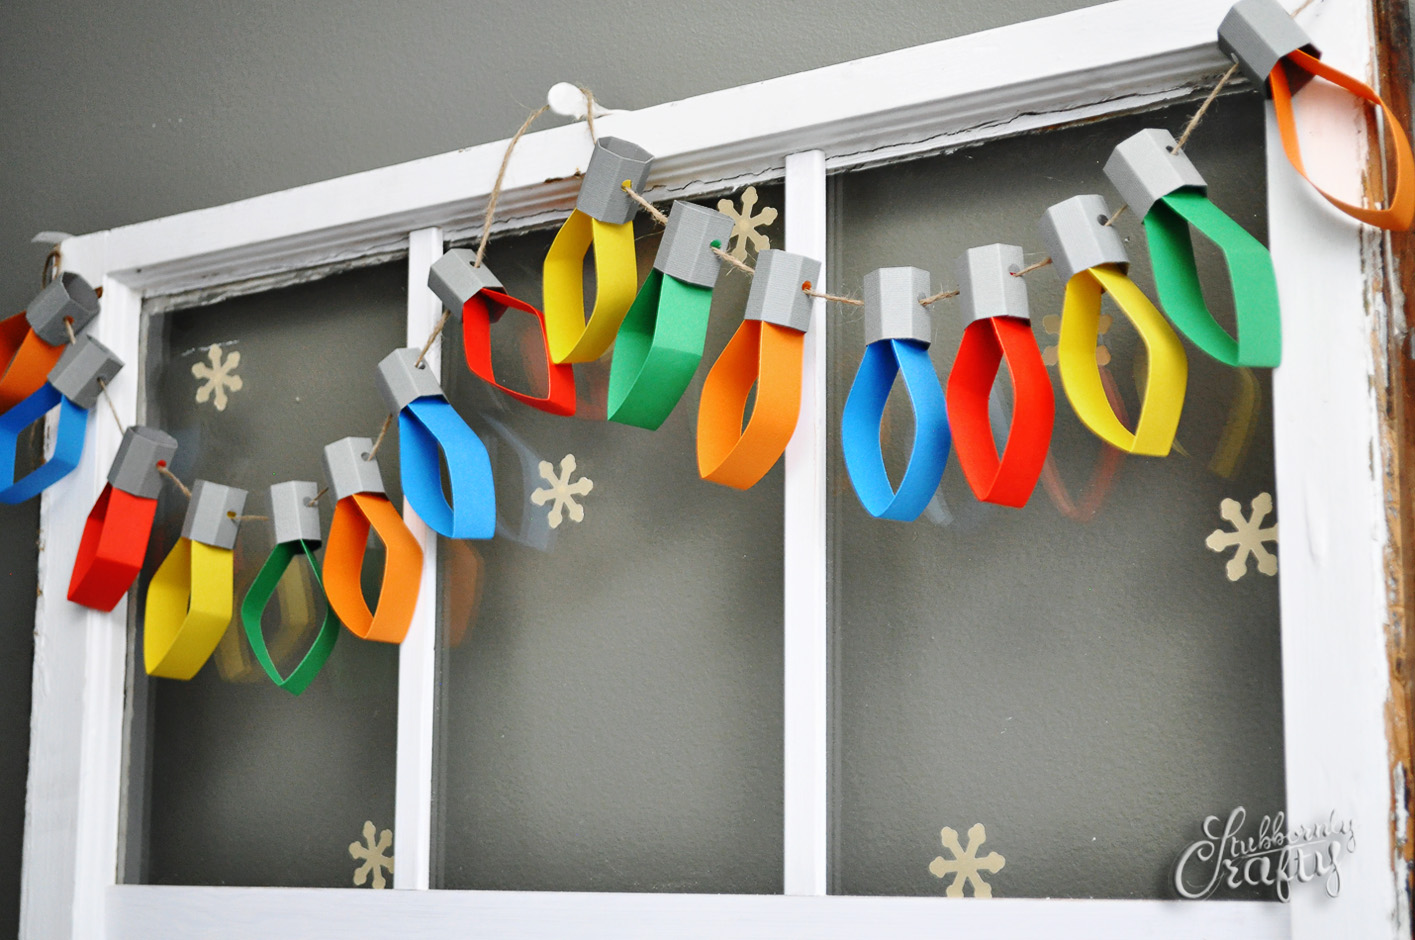 paper garlands in Christmas DIY decorations for kids bedrooms | lovelyspaces.com